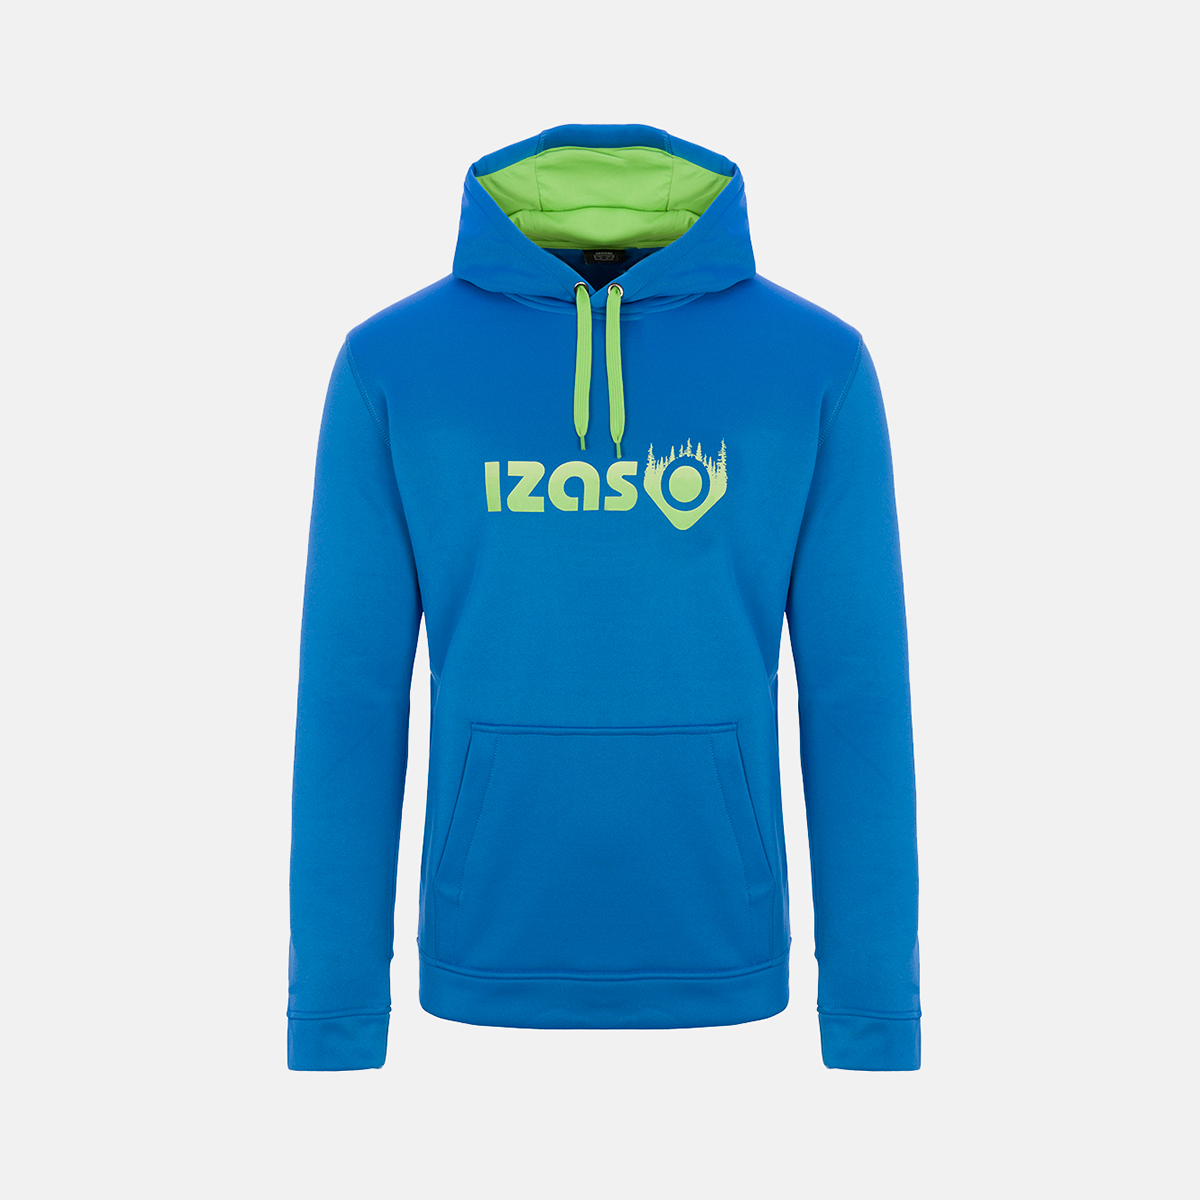 MAN'S DOHA HOODED PULLOVER BLUE